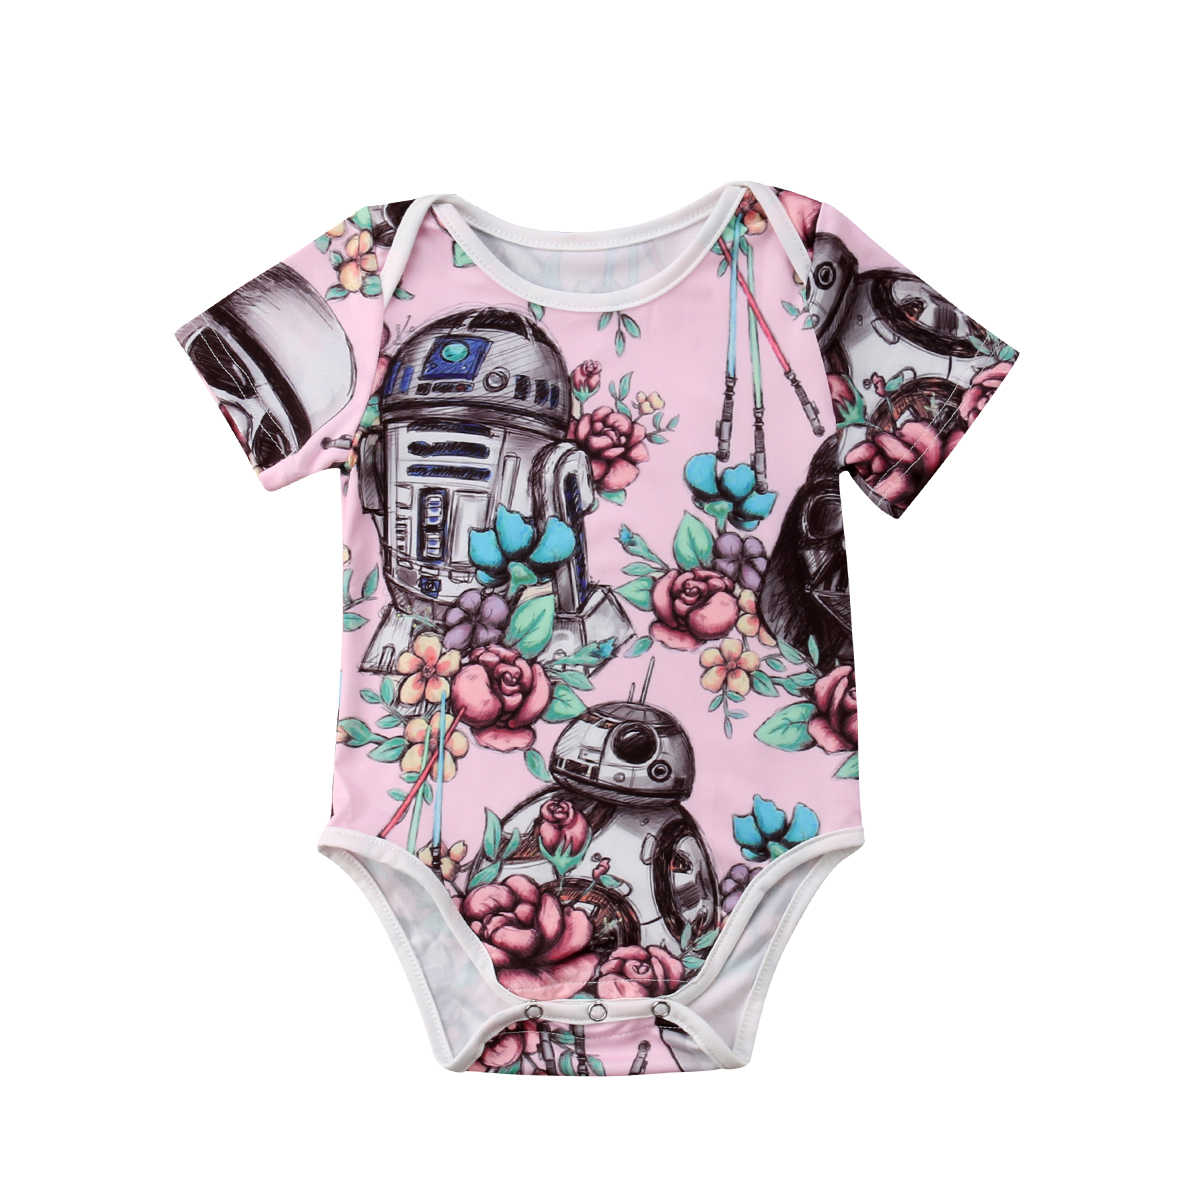 799c12676 Detail Feedback Questions about Baby Rompers Kids Short Sleeve ...